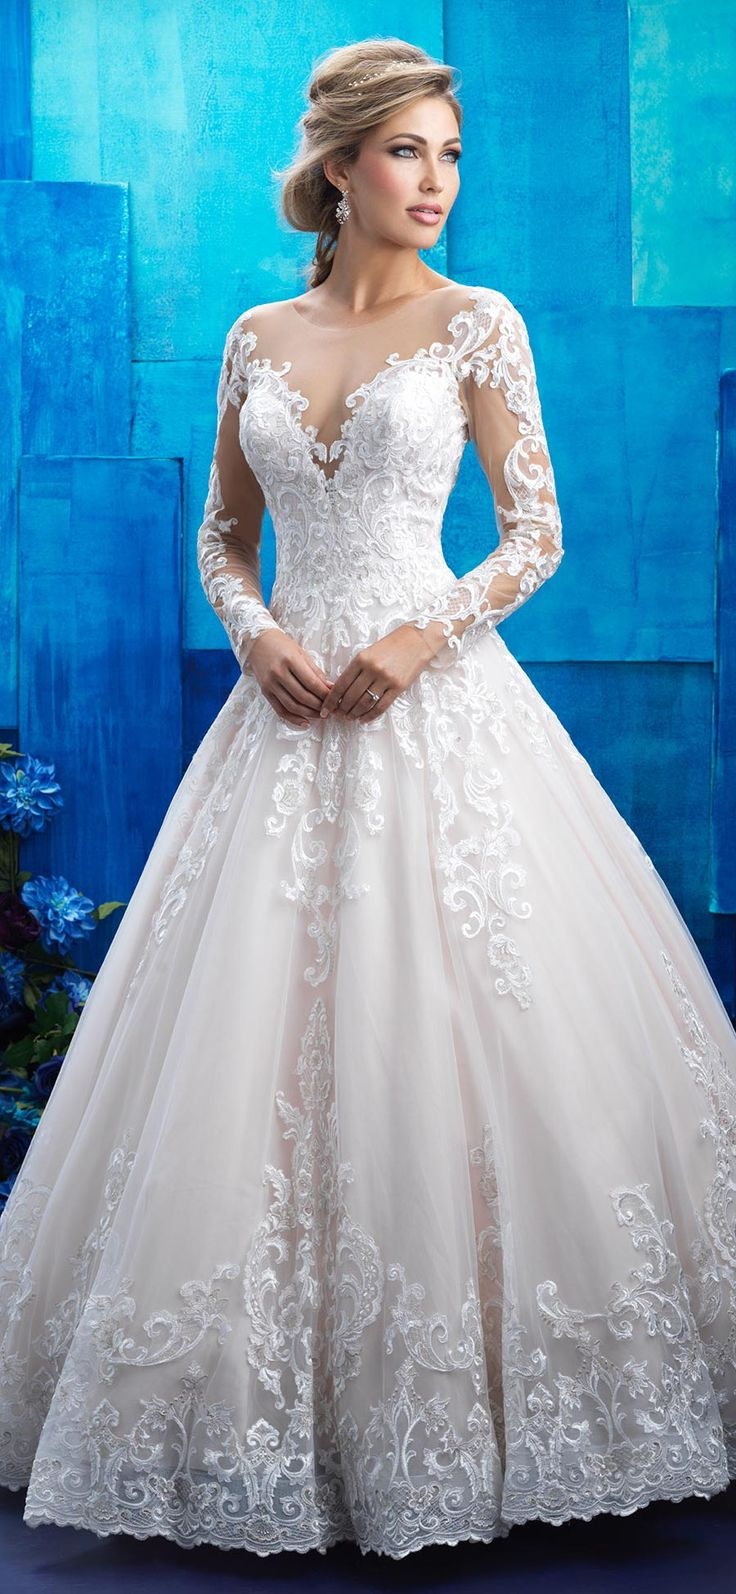 Allure Bridals style 9411. This regally romantic long sleeve lace ballgown is the stuff of dreams! @allurebridals #AllureBridal #ad #bridal #wedding #weddingdress #ballgown